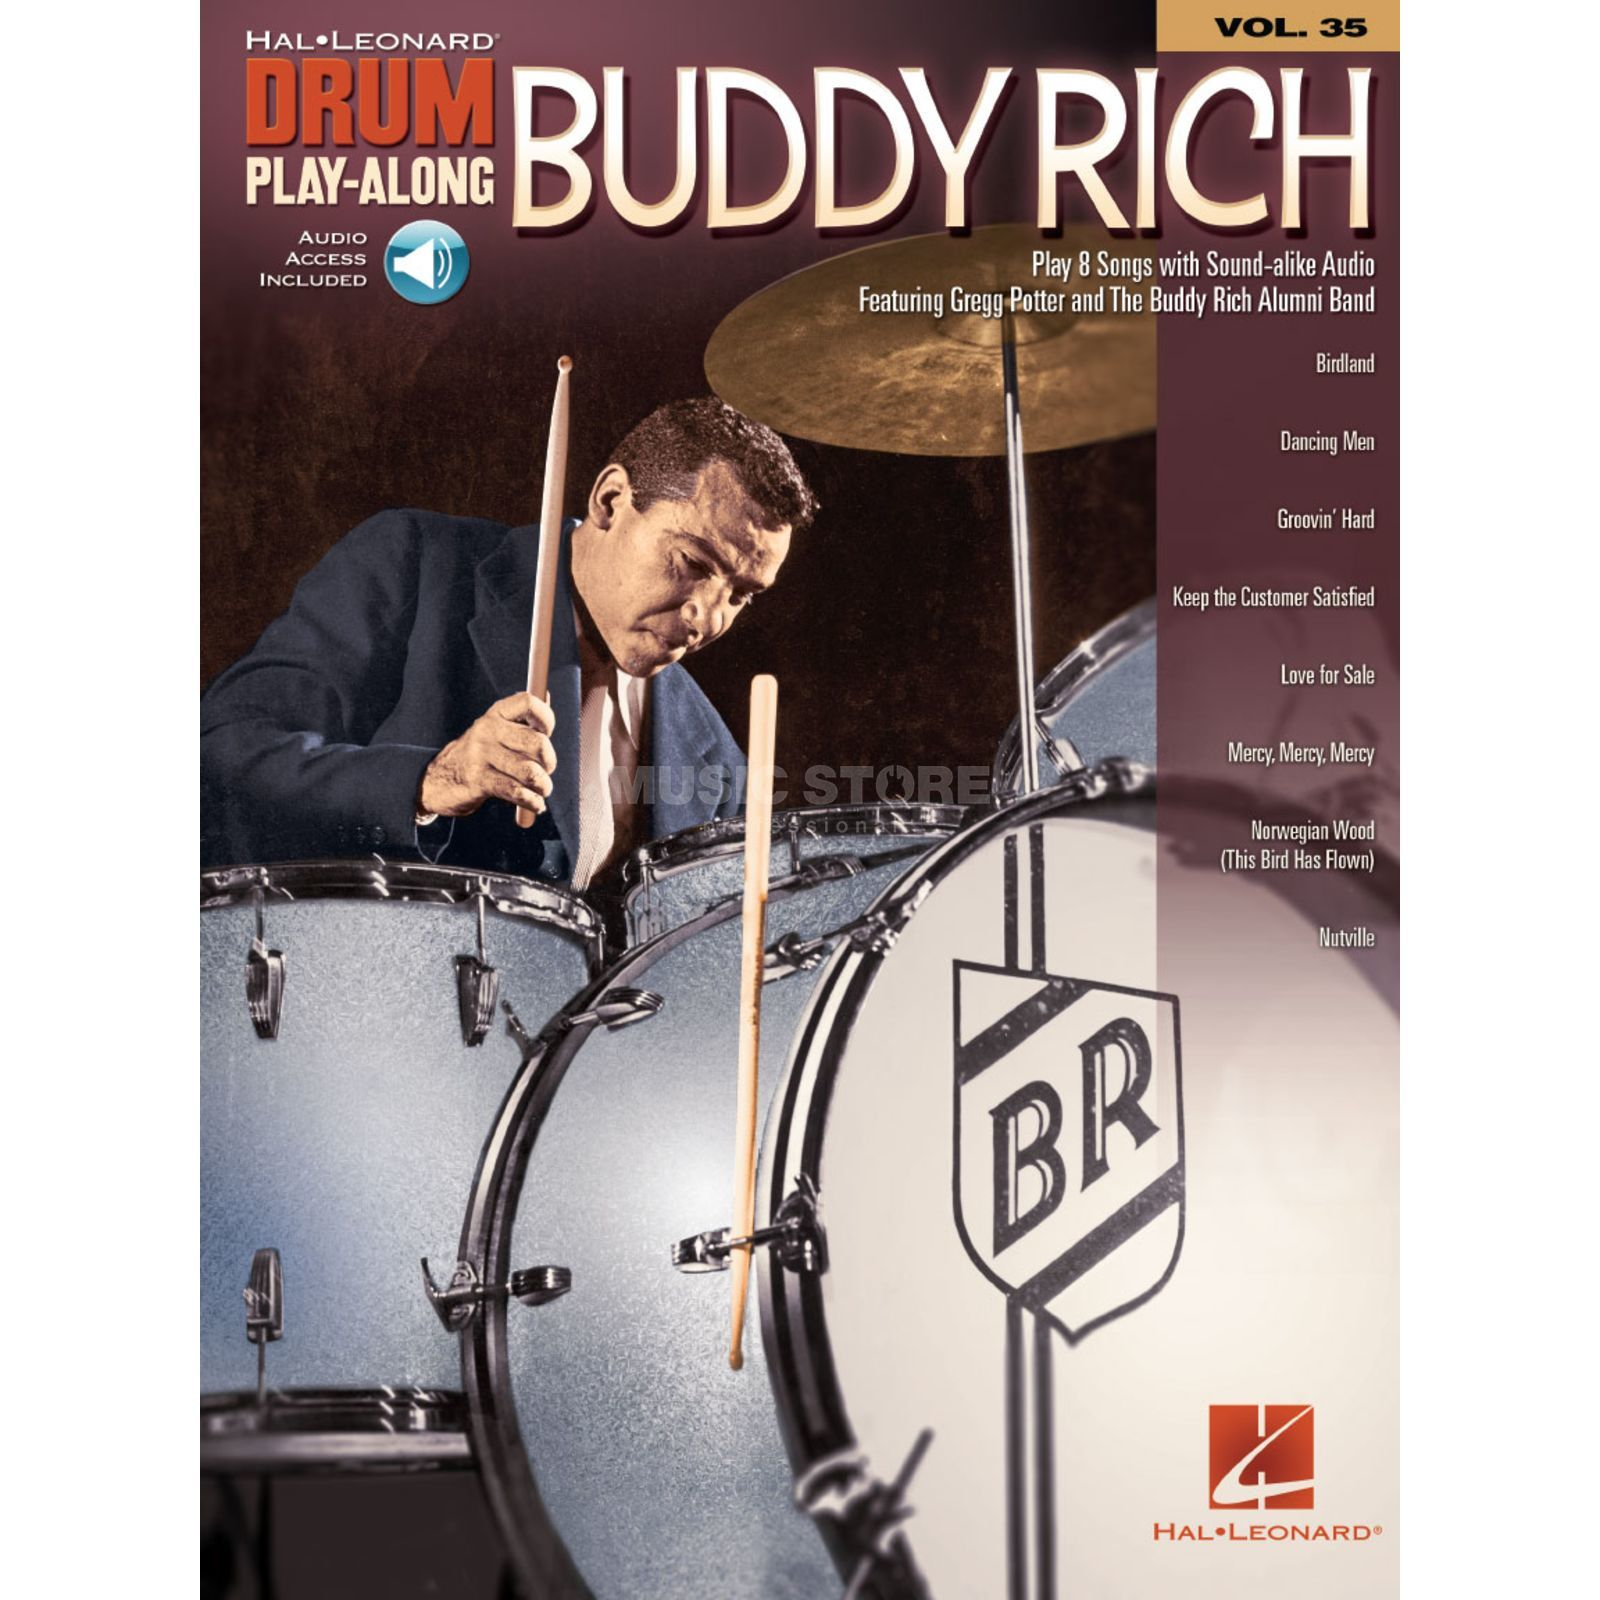 Hal Leonard Drum Play-Along: Buddy Rich Vol. 35, Download Image du produit